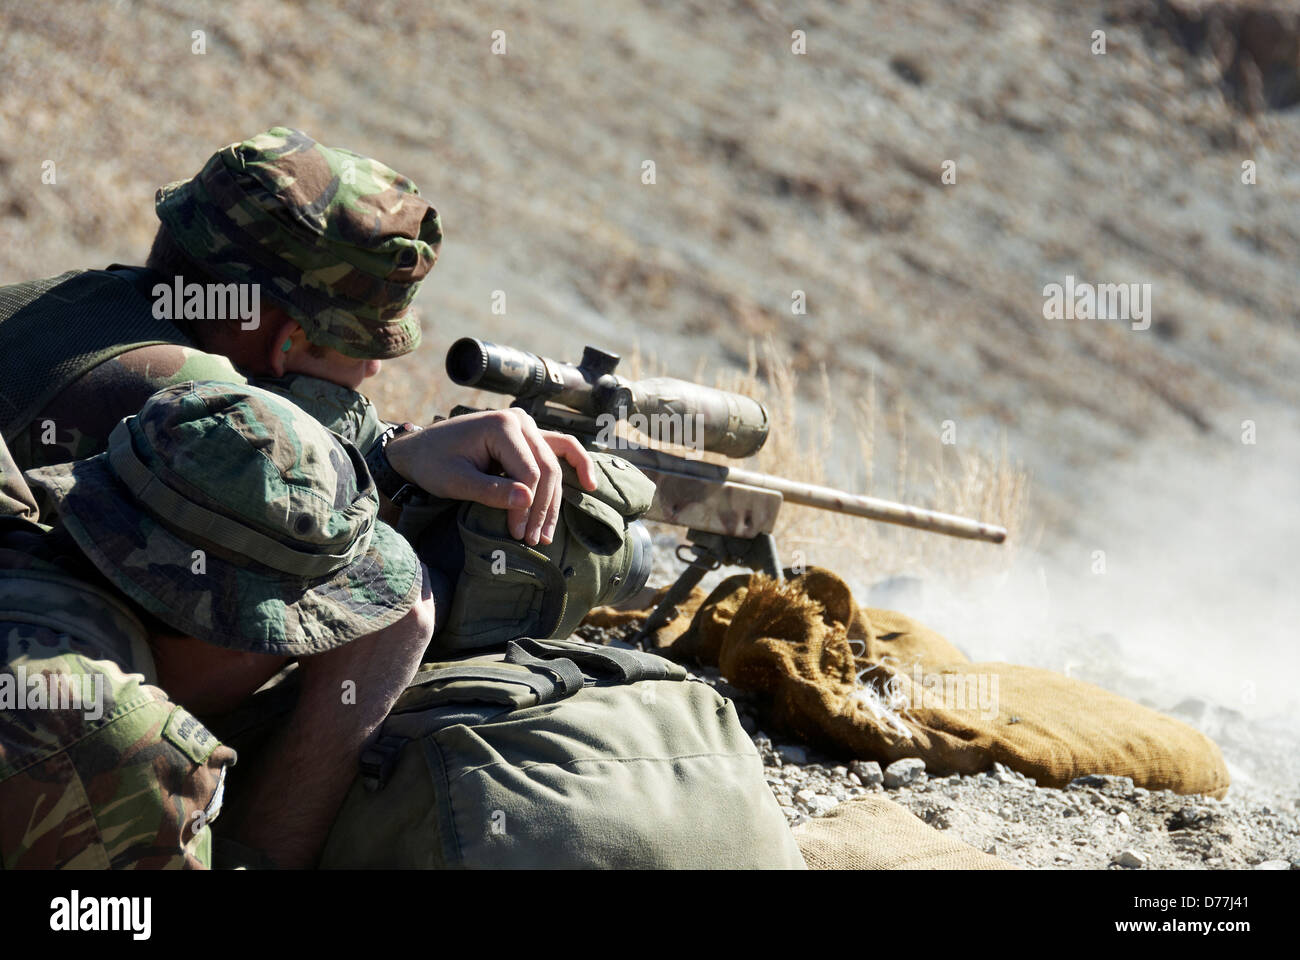 British Royal Marine firing sniper rifle during mountain sniper training Hawthorne Nevada USA - Stock Image